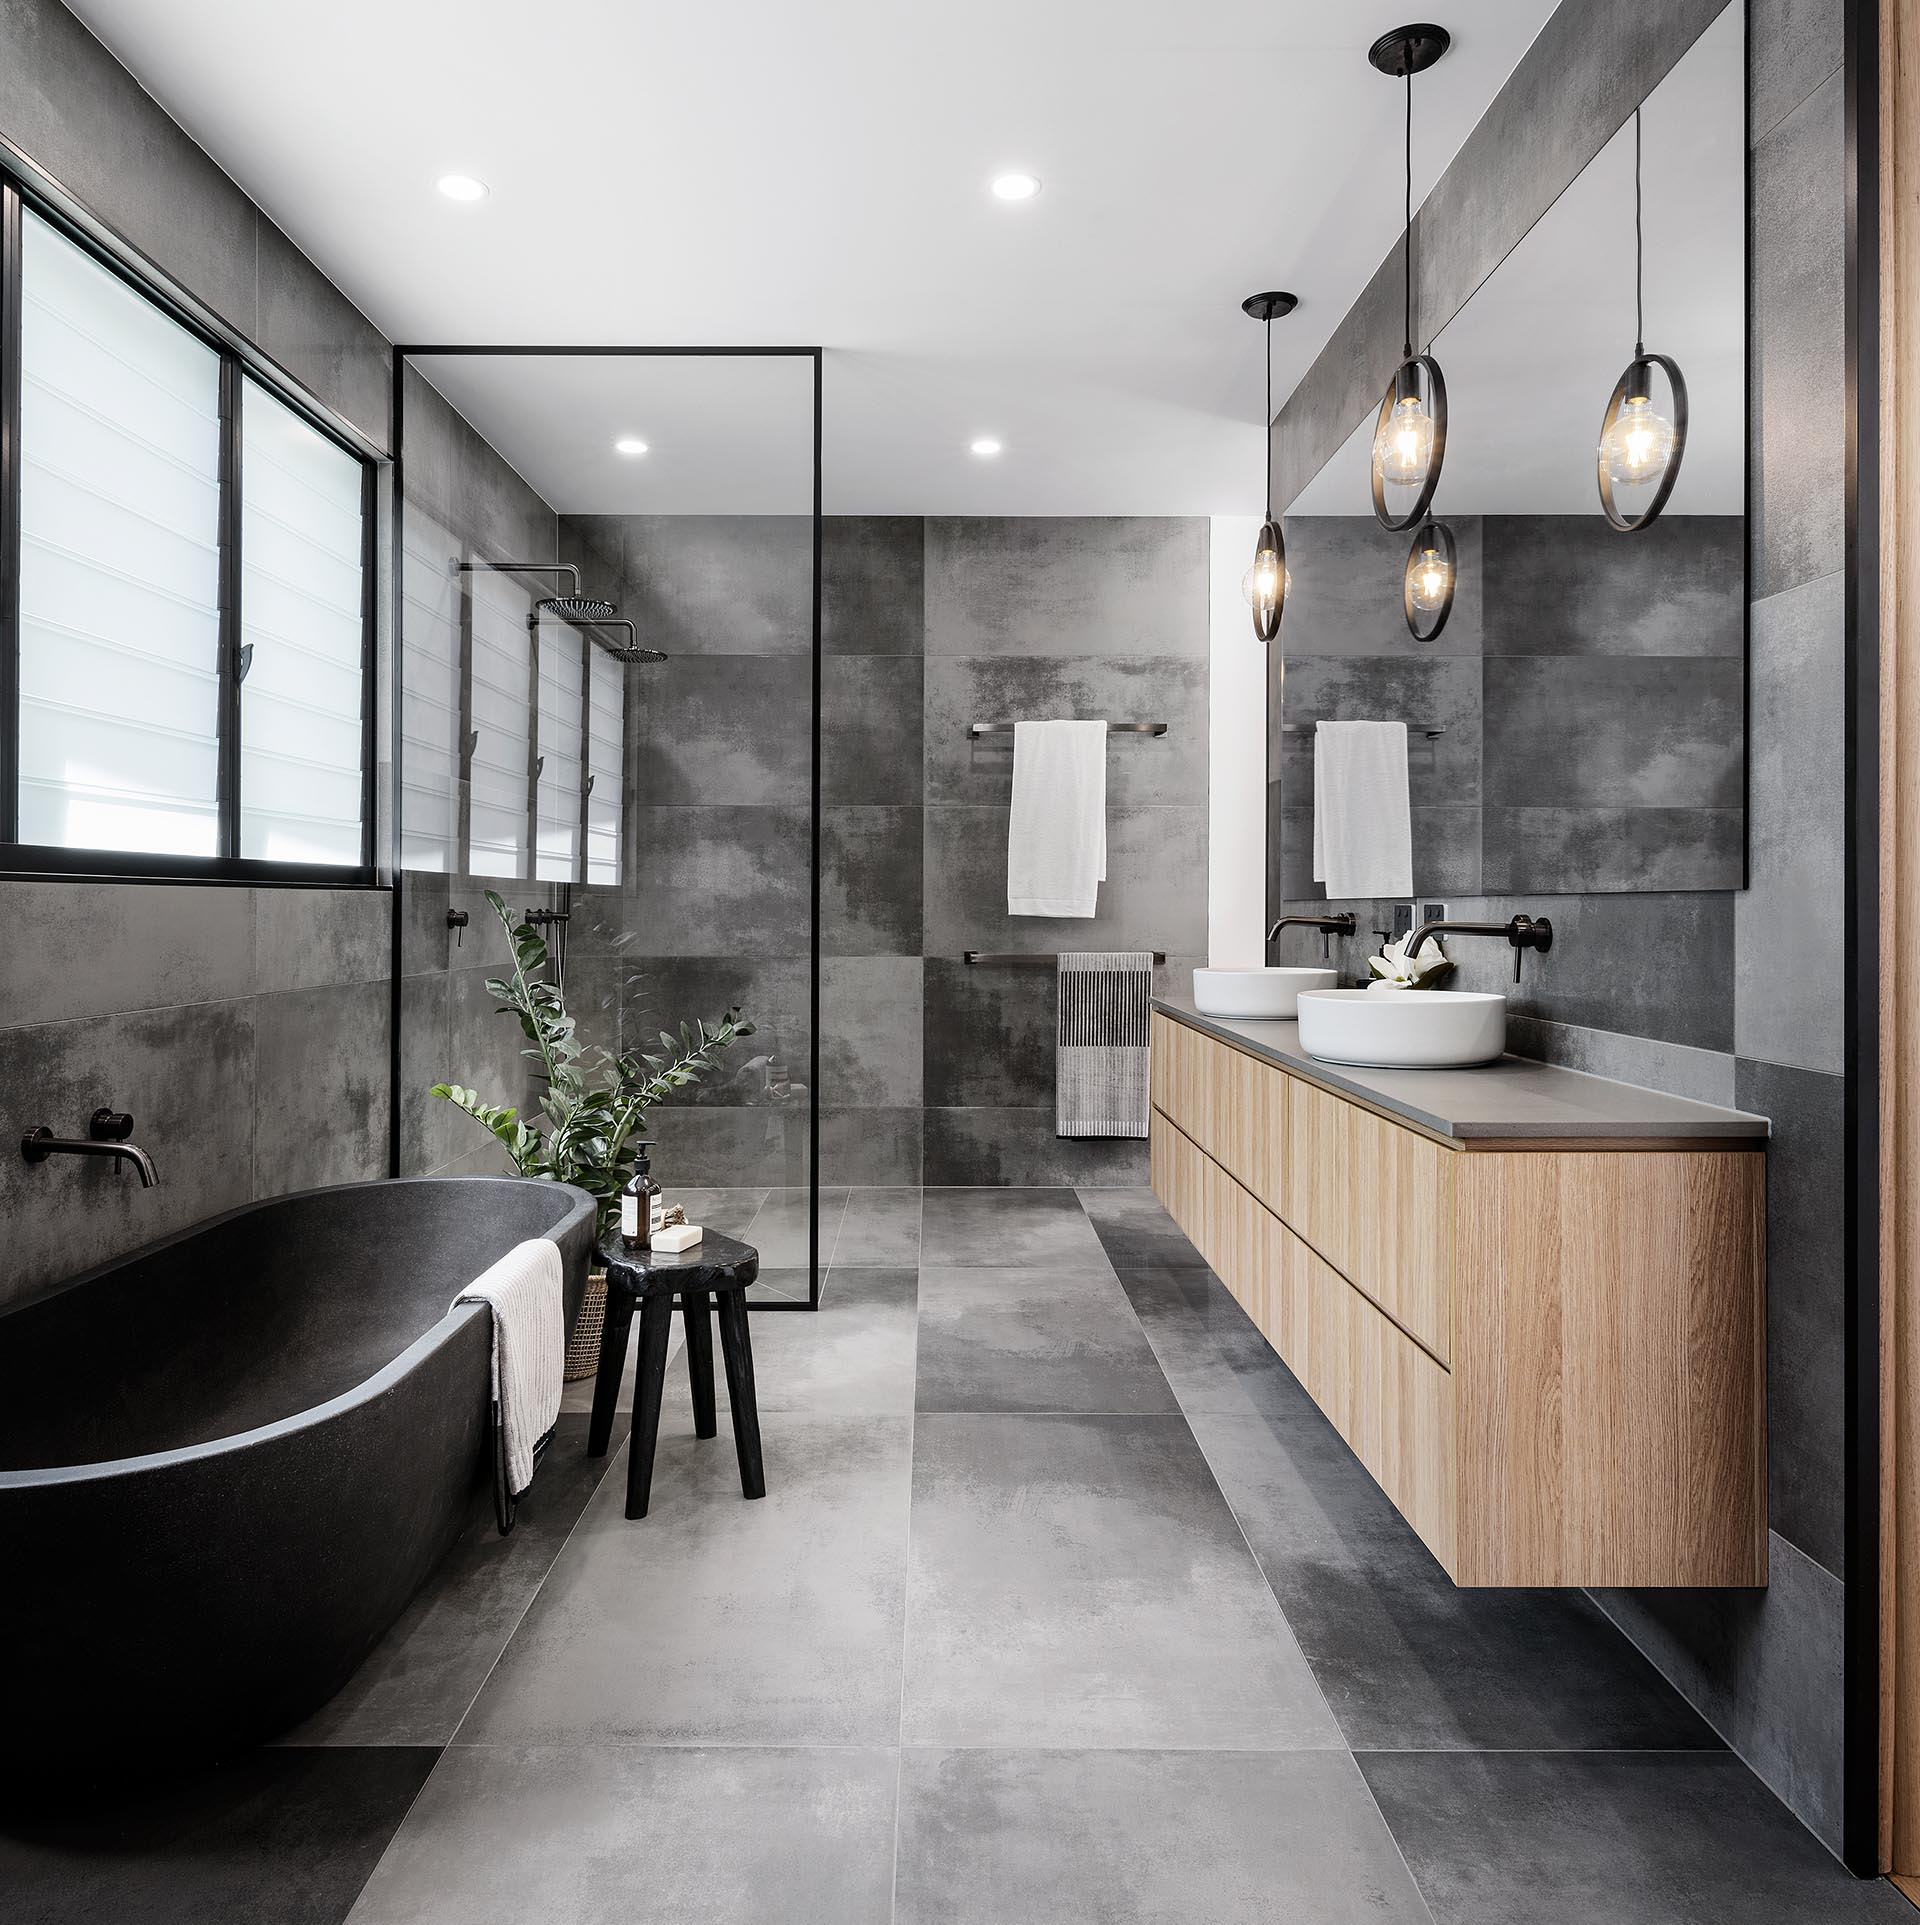 A Cloudy Grey Tile Sets The Palette For This Bathroom